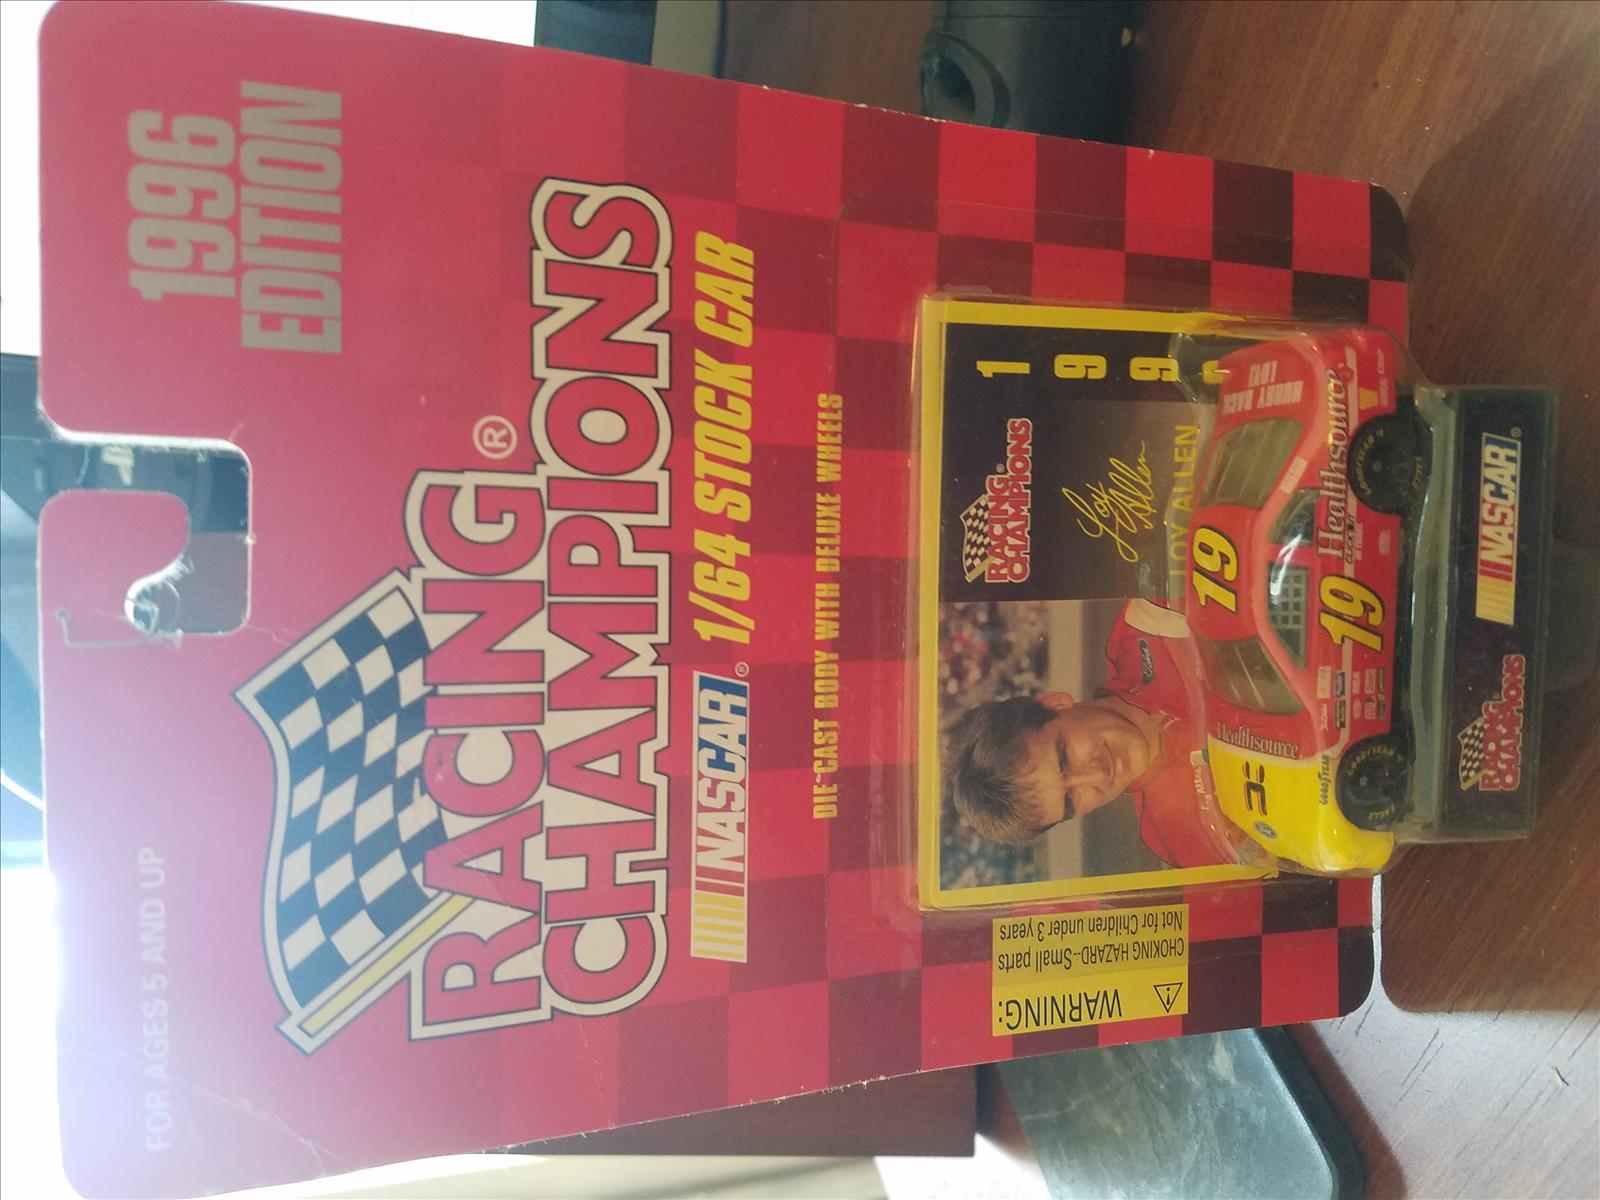 1996 Loy Allen NASCAR Diecast 19 Health Source Healthsource CWC 1:64 Racing Champions 1996 Edition 1